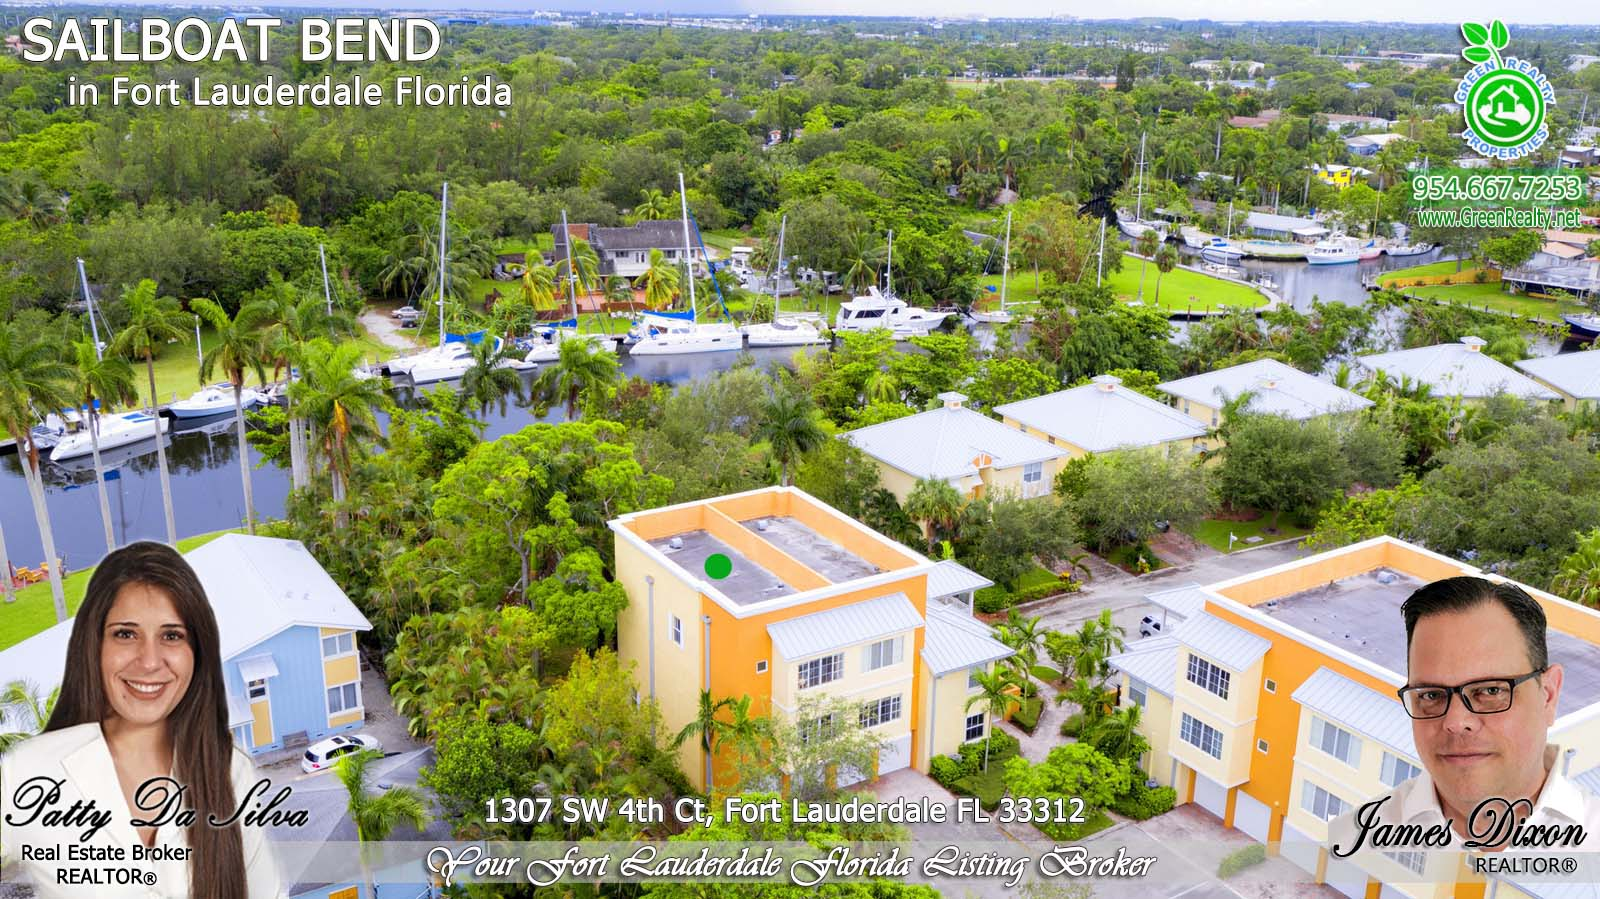 Homes For Sale in Sailboat Bend Fort Lauderdale Florida